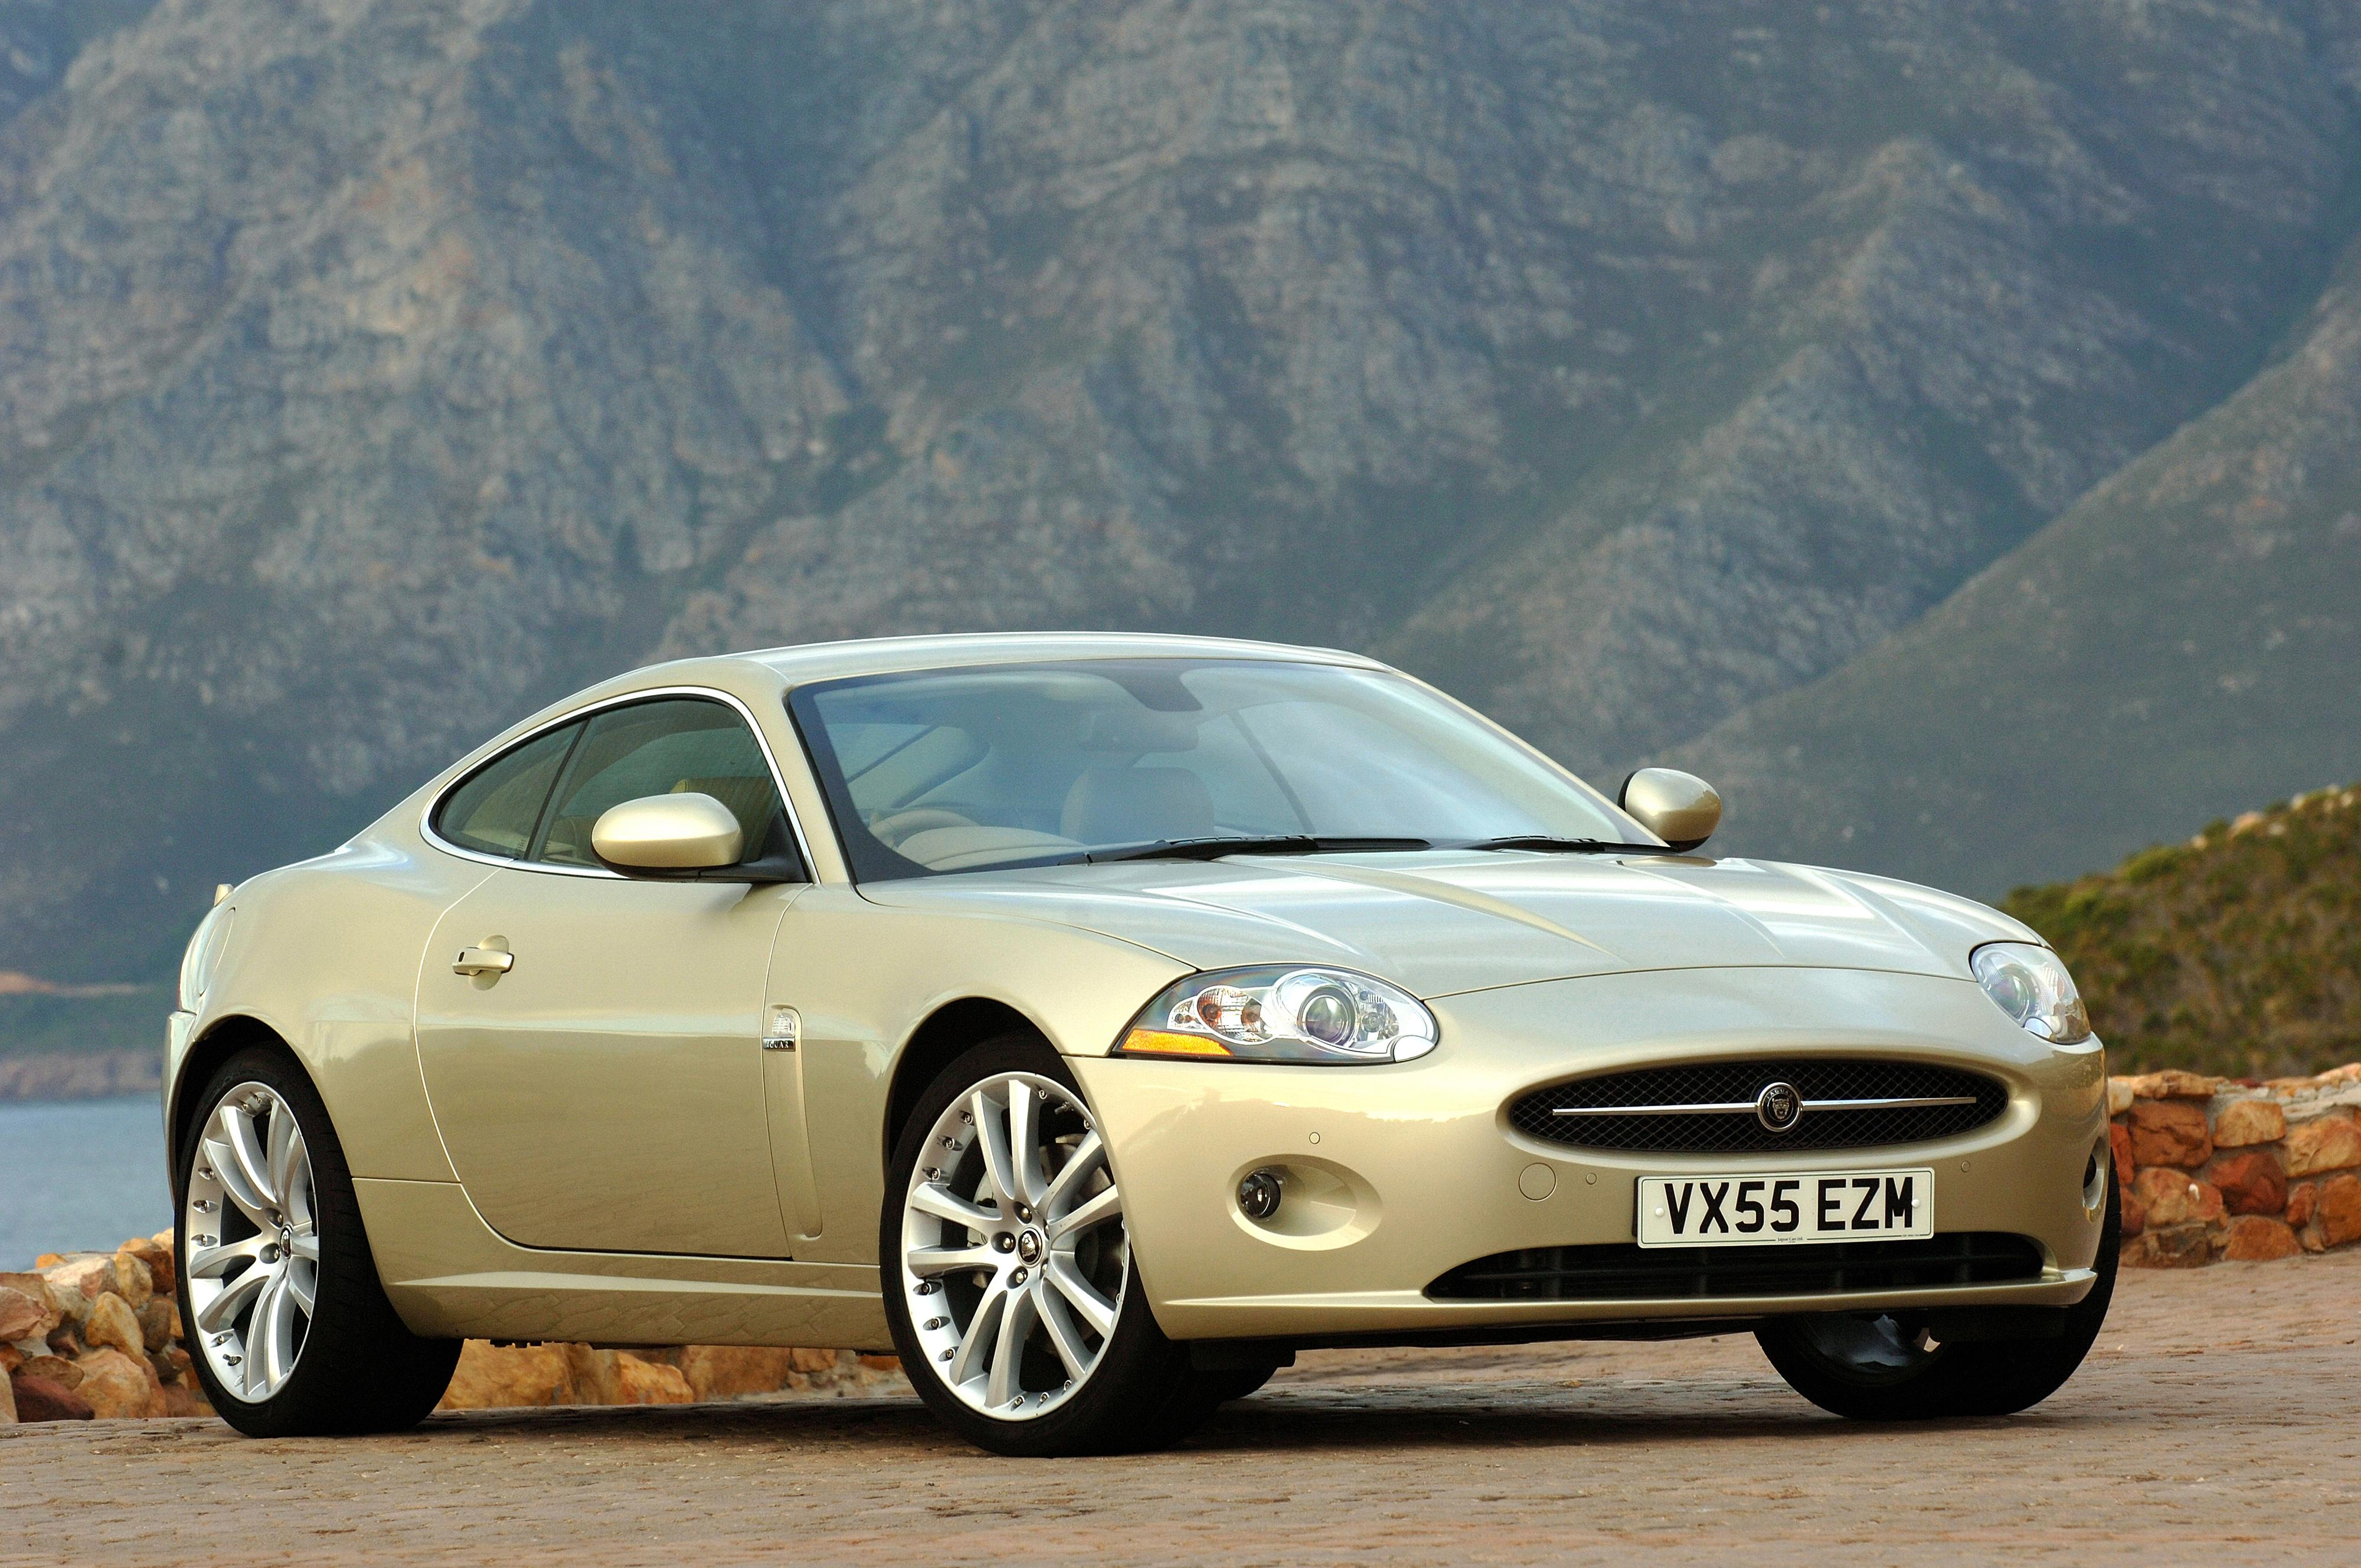 litre in to drive first on are no s jaguar xkr side coupe xkrsside and conversion know expect require their thought fuel they customers what theory for fiefdom xk